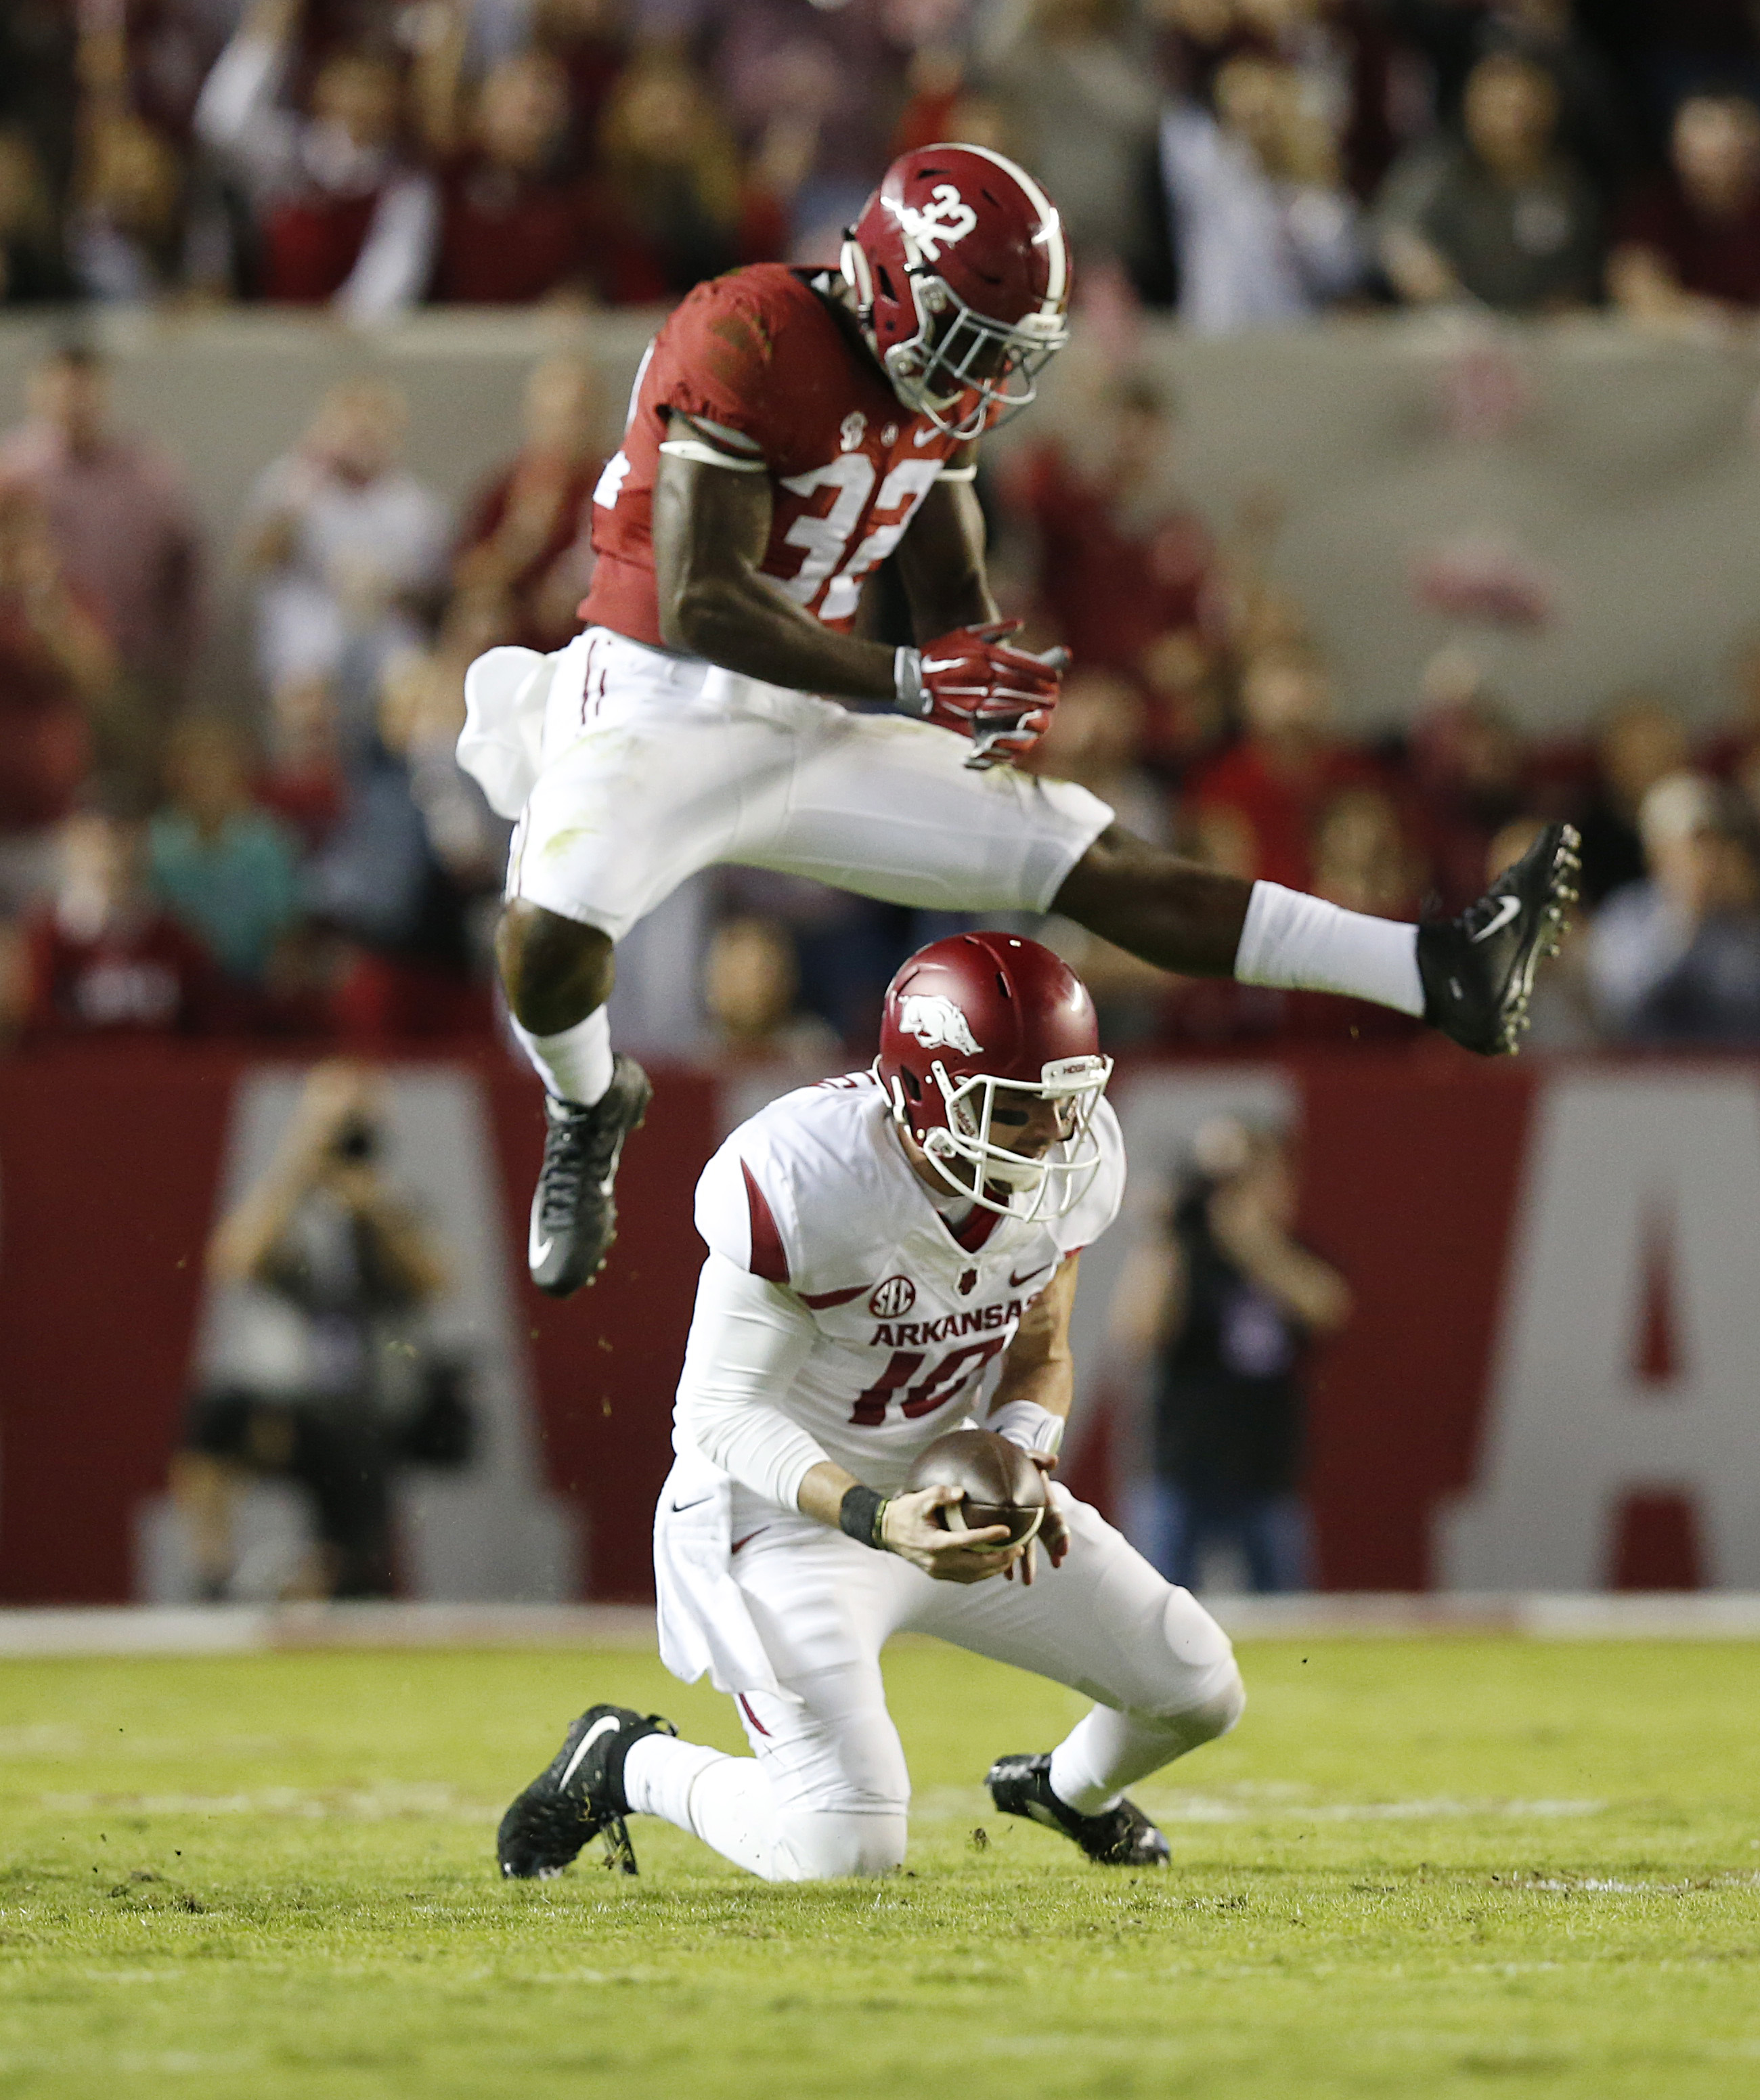 Alabama linebacker Rashaan Evans (32) jumps over Arkansas quarterback Brandon Allen (10) in the first half of an NCAA college football game, Saturday, Oct. 10, 2015, in Tuscaloosa, Ala. (AP Photo/Brynn Anderson)